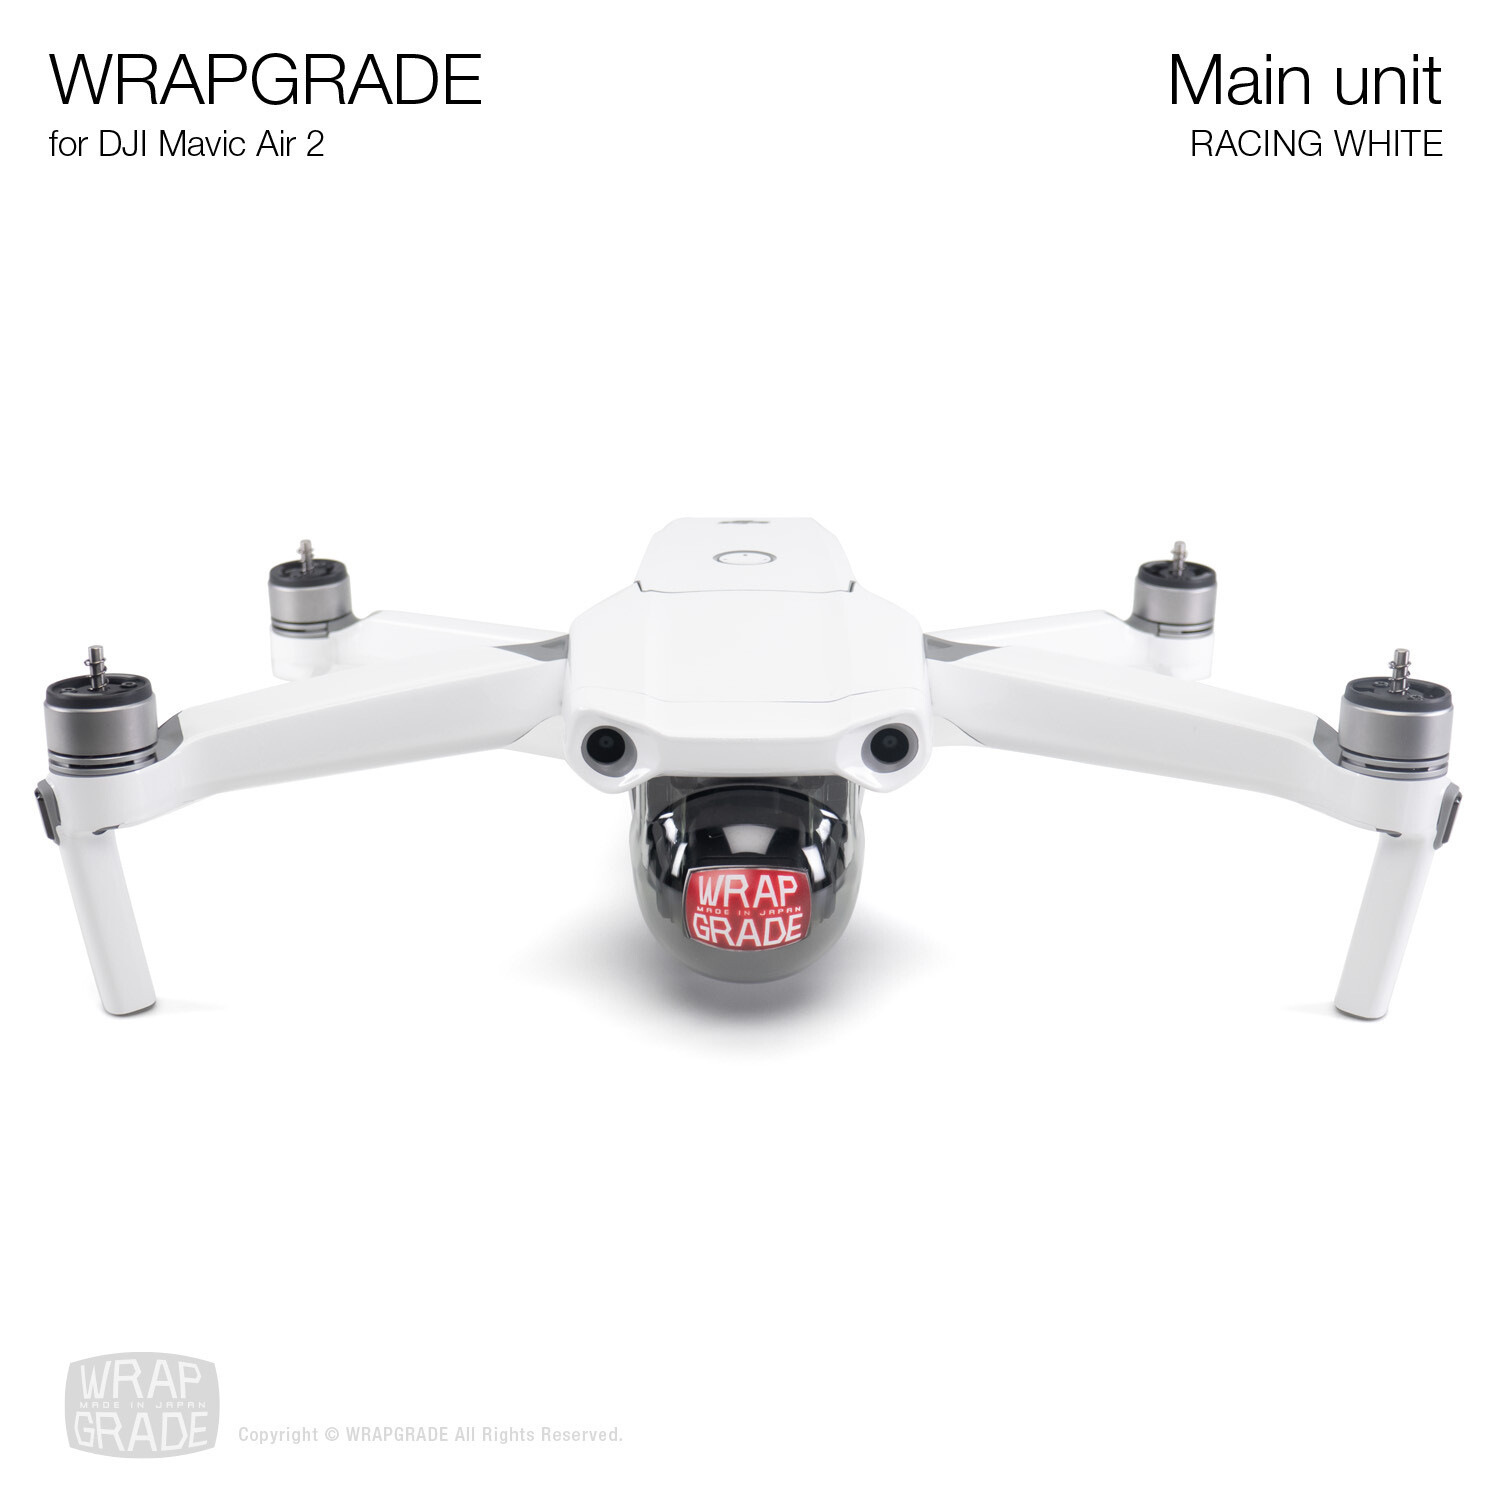 Wrapgrade for DJI Mavic Air 2 | Main Unit​ (RACING WHITE​)